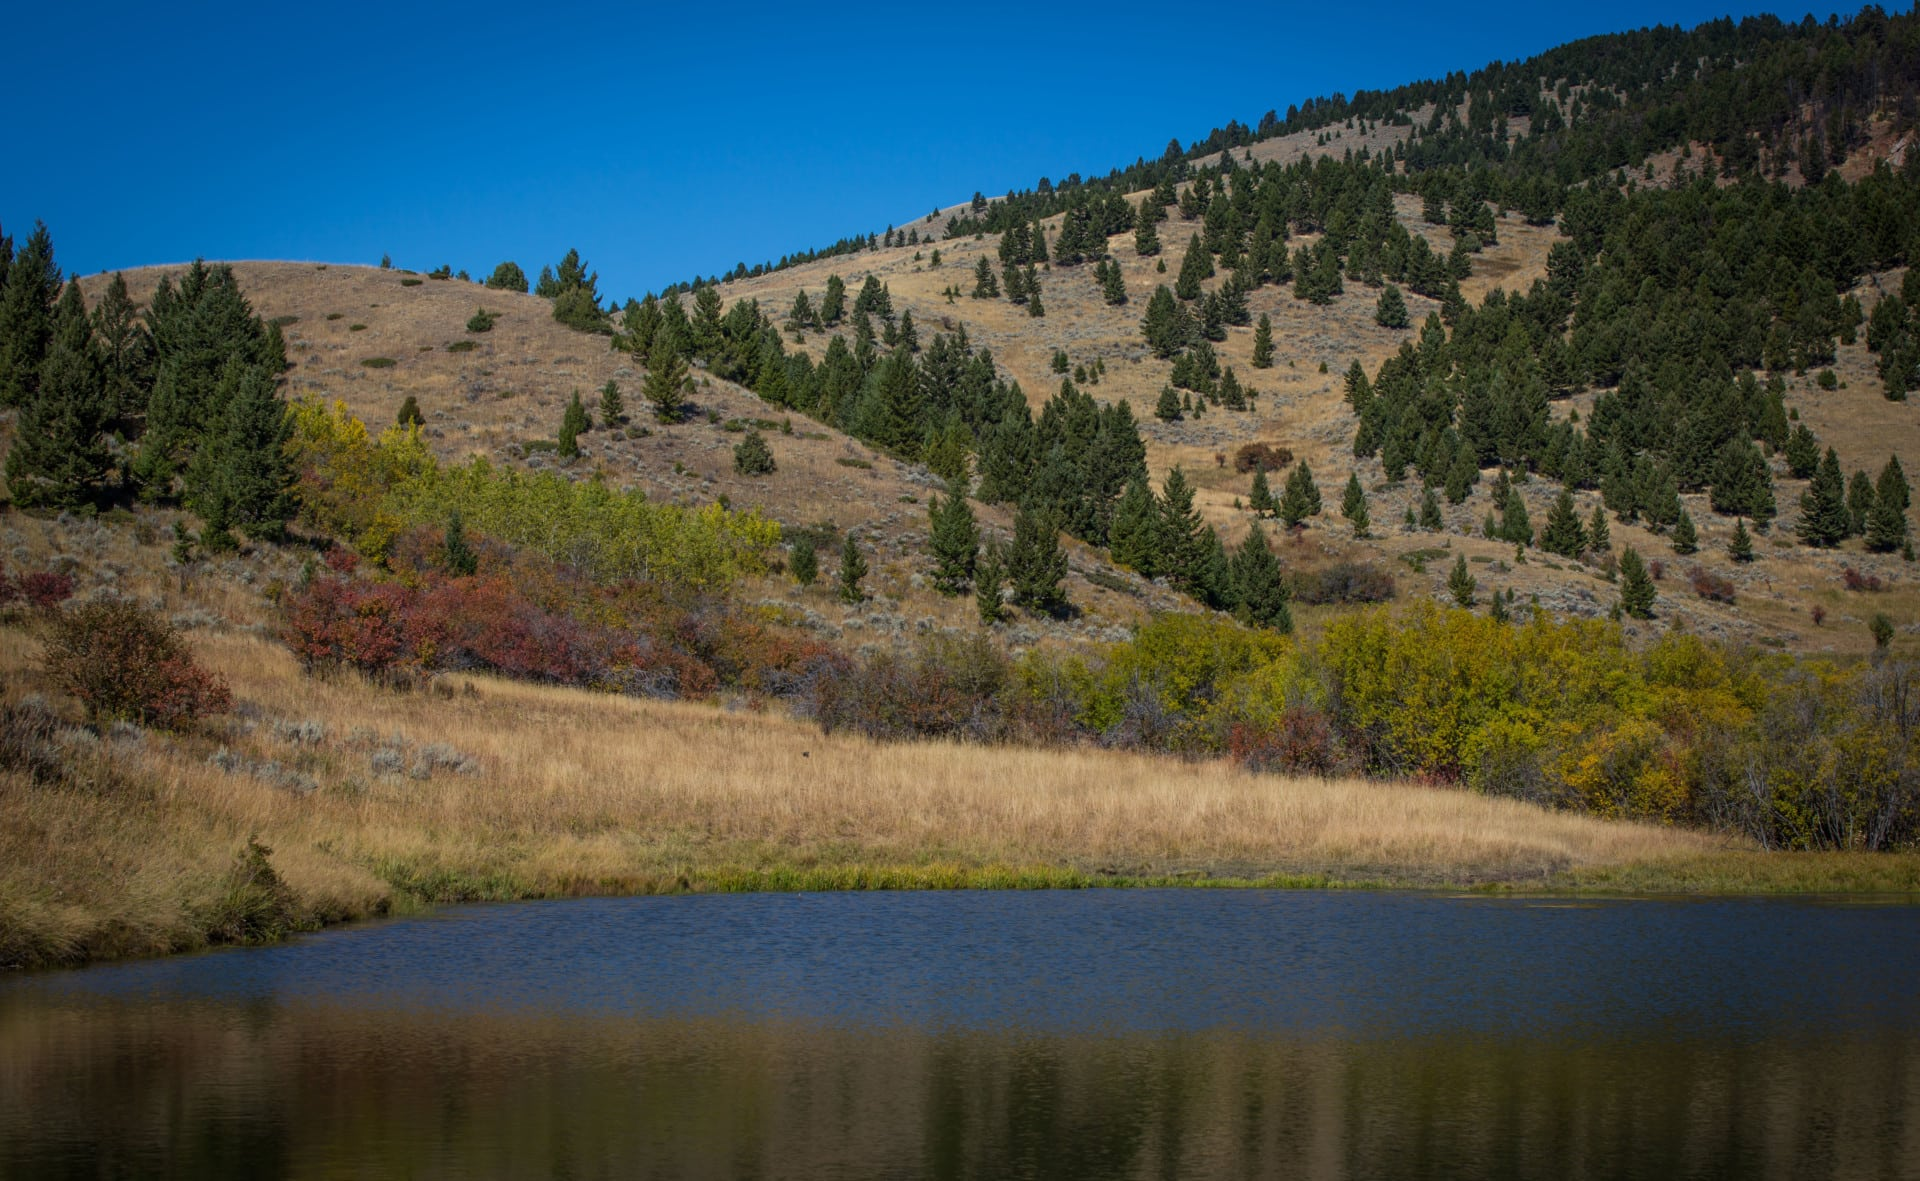 land only property for sale montana aspen canyon ranch